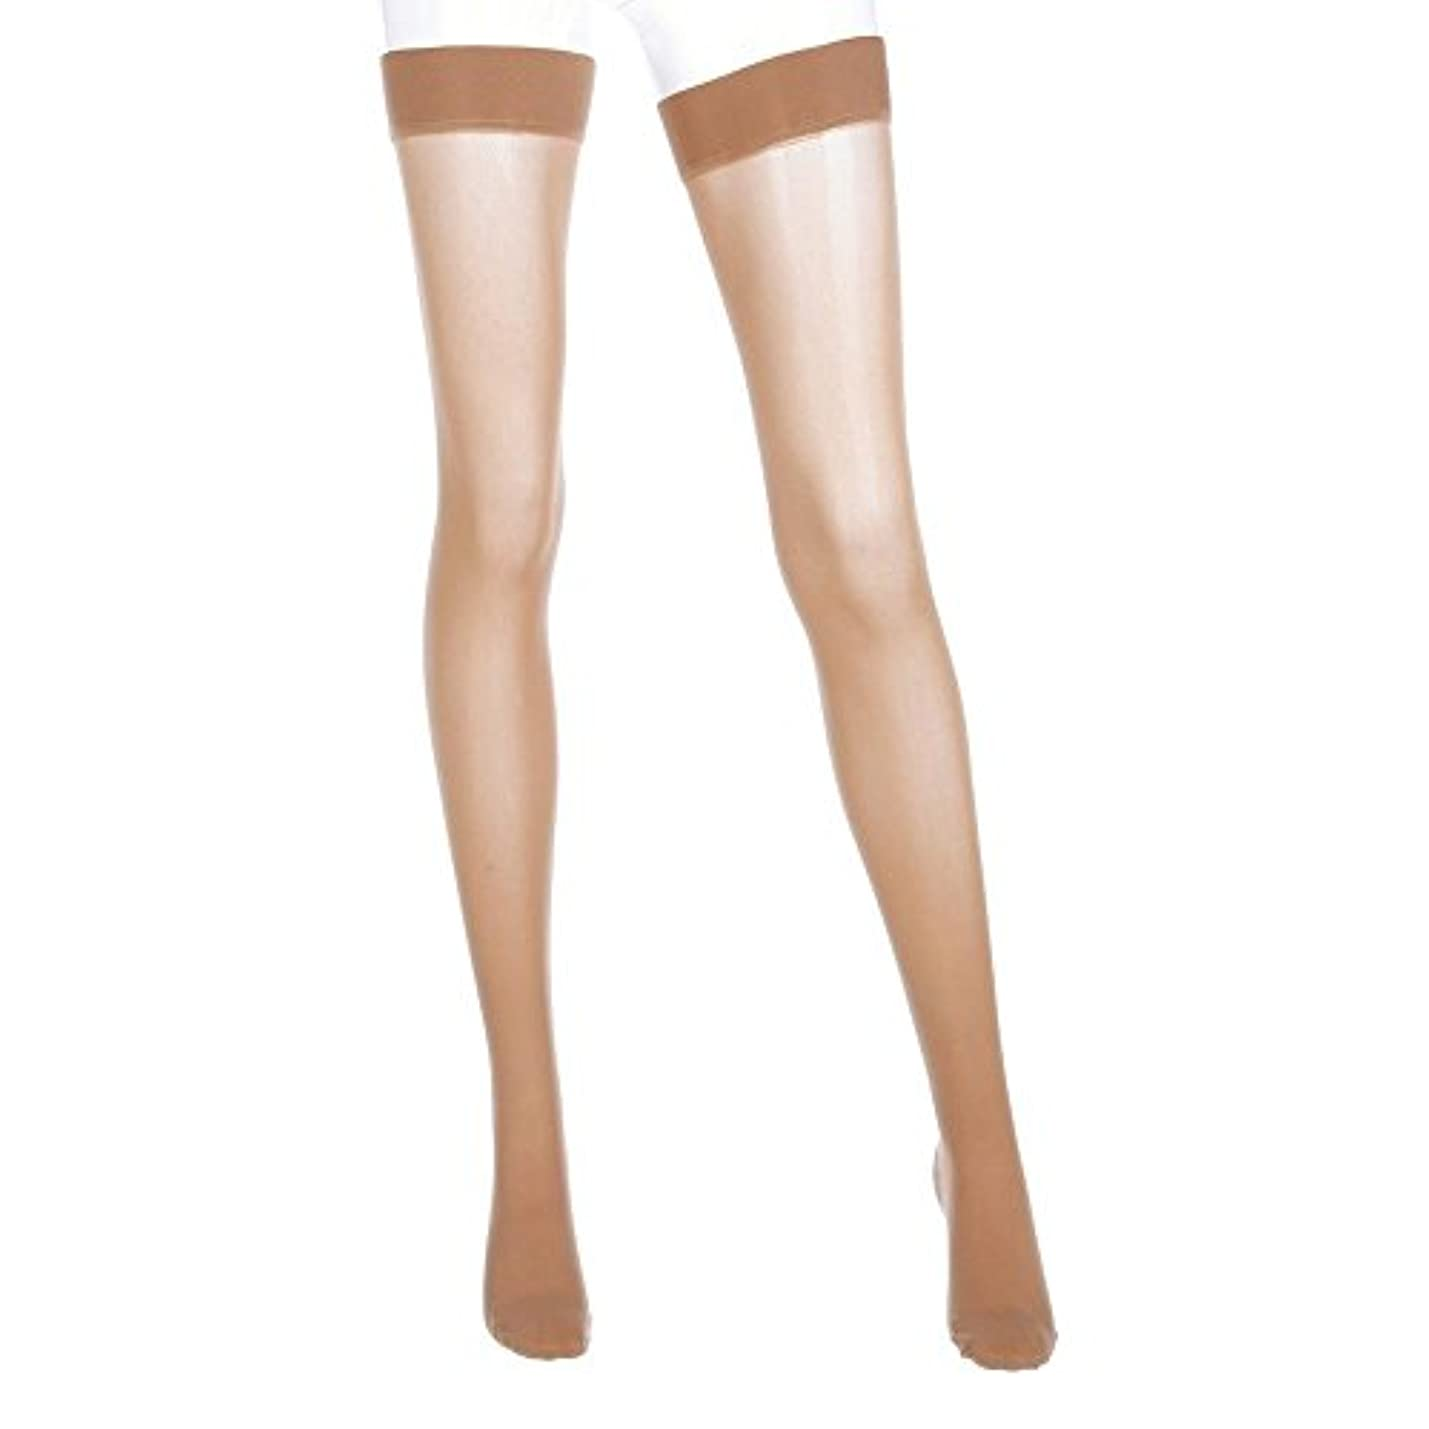 家庭教師風が強いデモンストレーションMediven Assure, Closed Toe, with top band, 20-30 mmHg, Thigh High Compression Stocking, X-Large, Beige by Medi